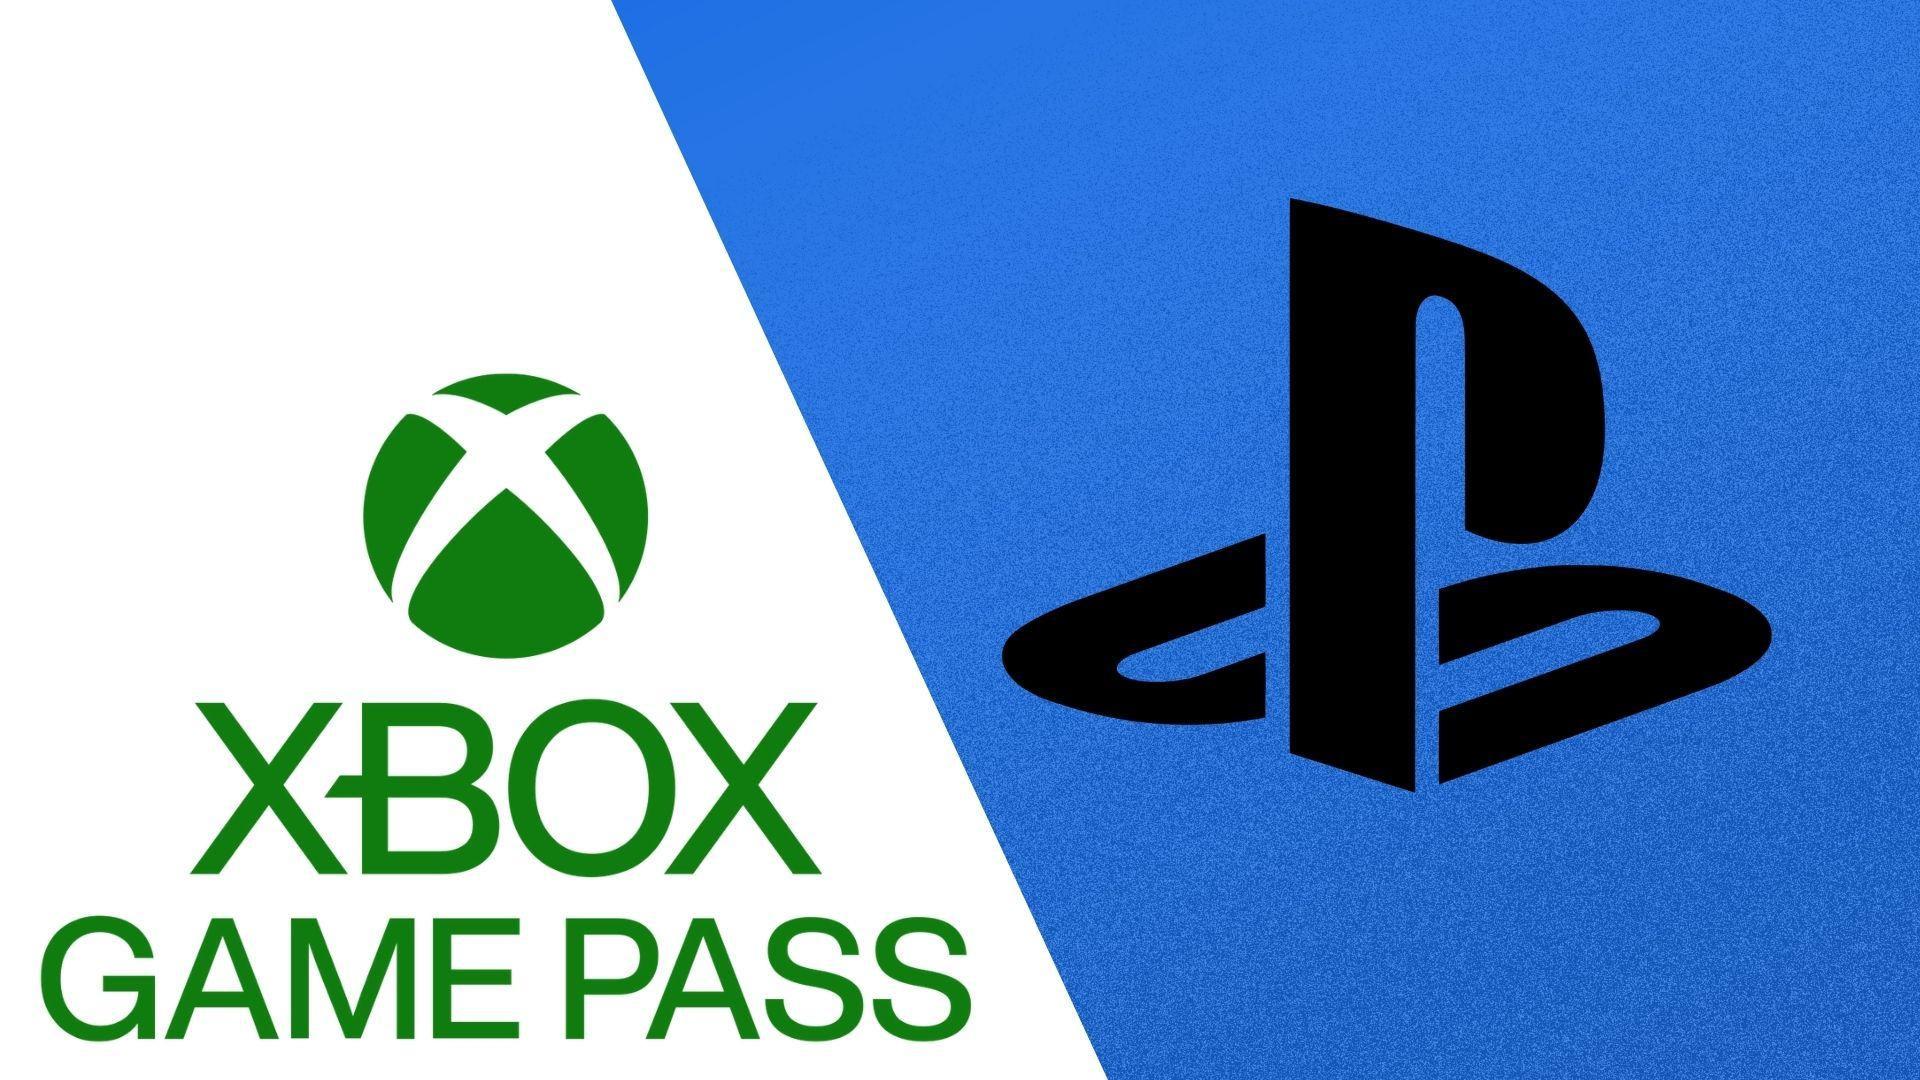 Xbox Game Pass on PS4 and PS5: Should Xbox Game Pass be on PlayStation?